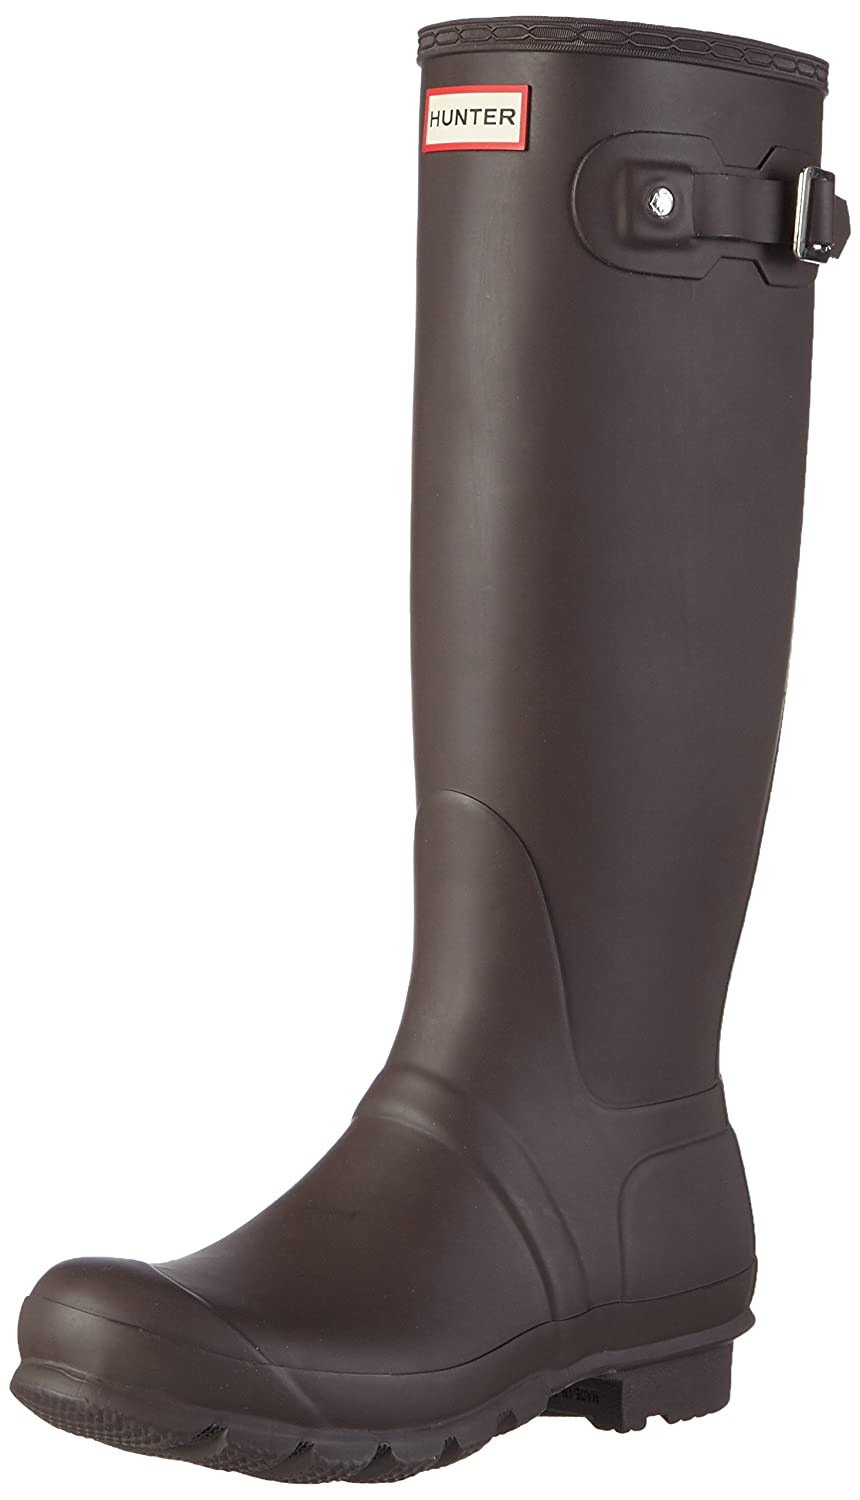 Hunter Women's Original Tall Rain Boot B01DJ3S7U4 7 B(M) US|Bitter Chocolate